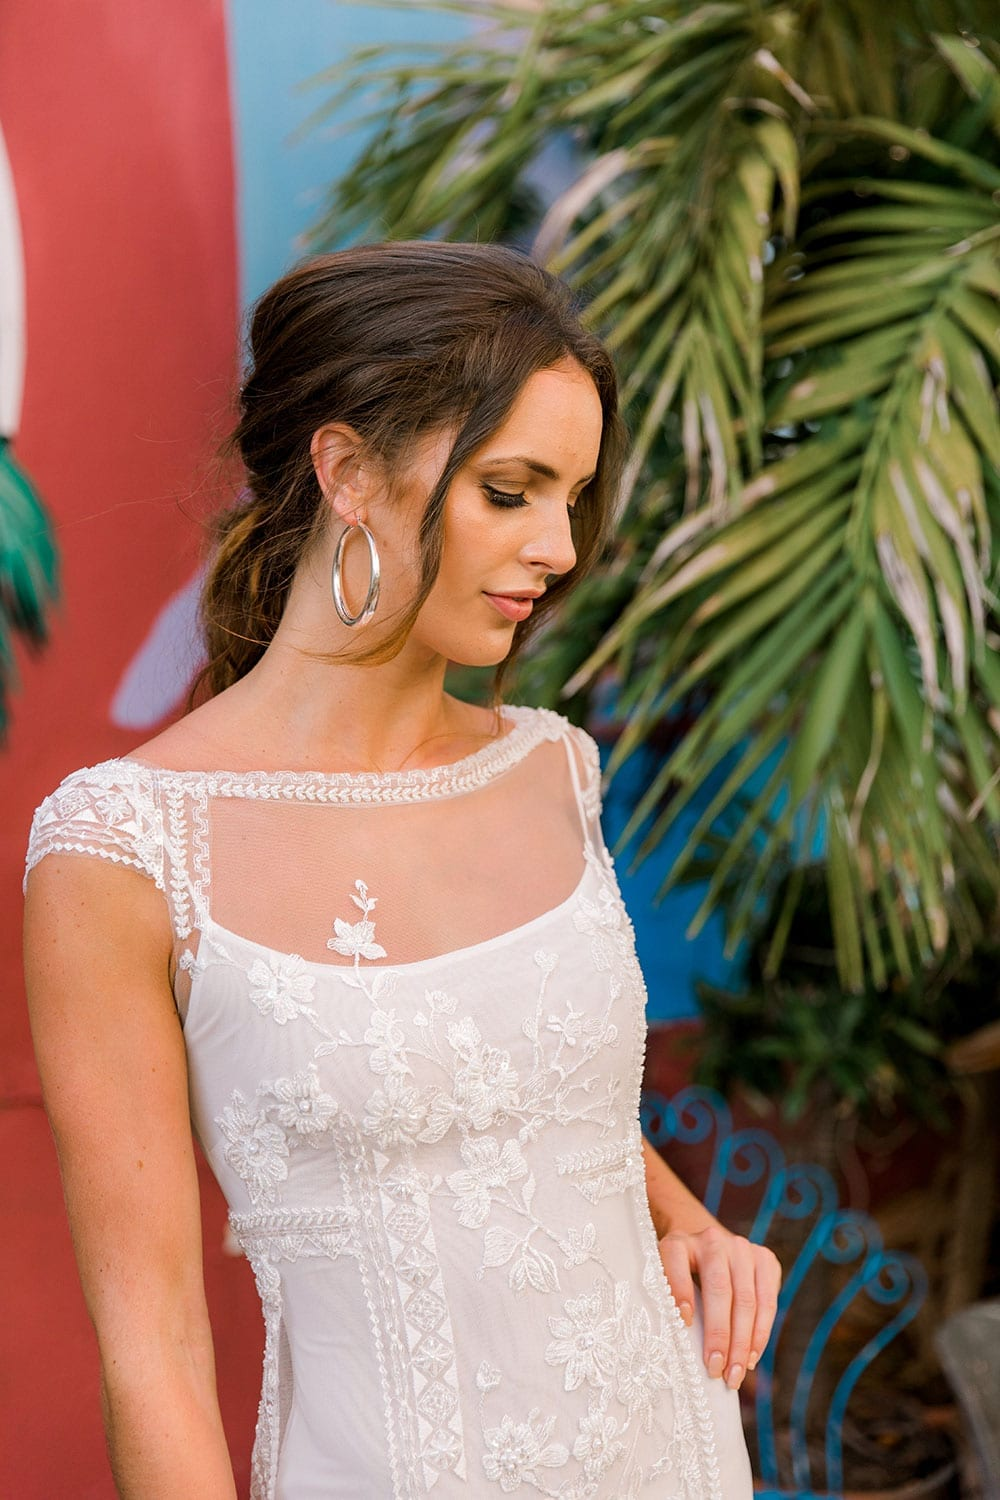 Model wearing Vinka Design Lola Wedding Dress, a Boat-Neck Lace Wedding Gown close up in the colourful streets of Havana